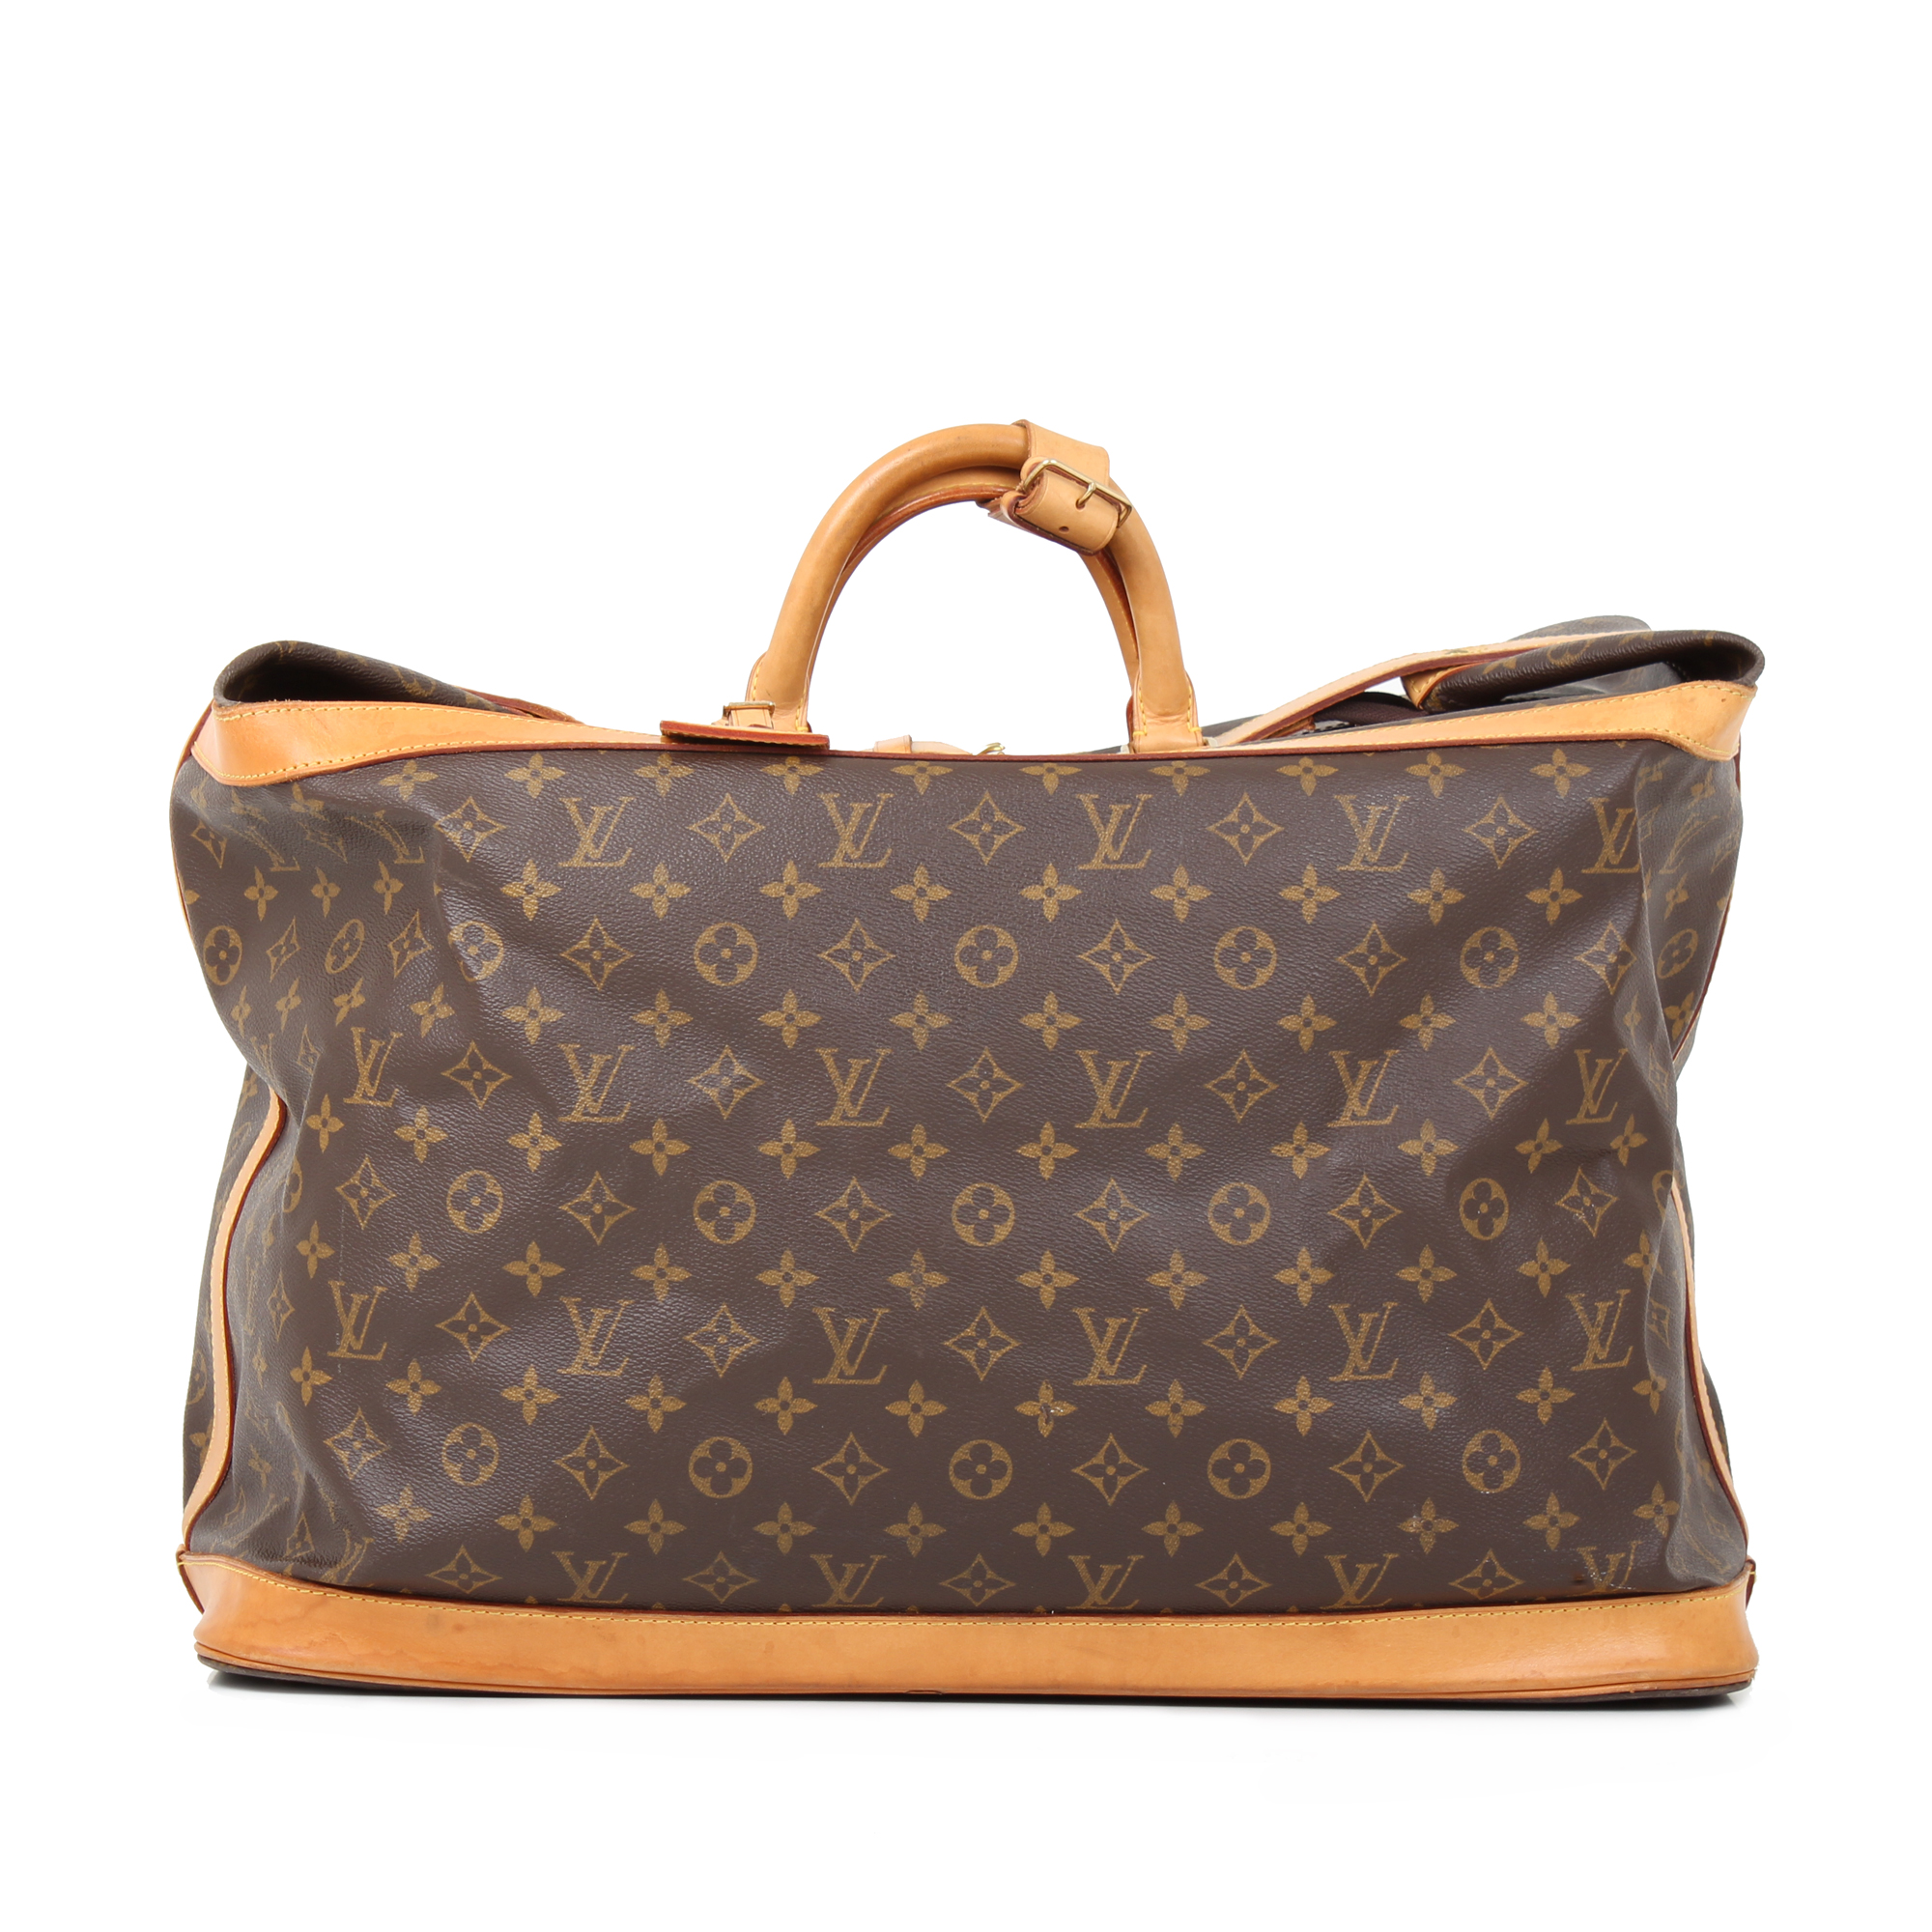 a5f46152e Bolso De Viaje Louis Vuitton Precio | Stanford Center for ...